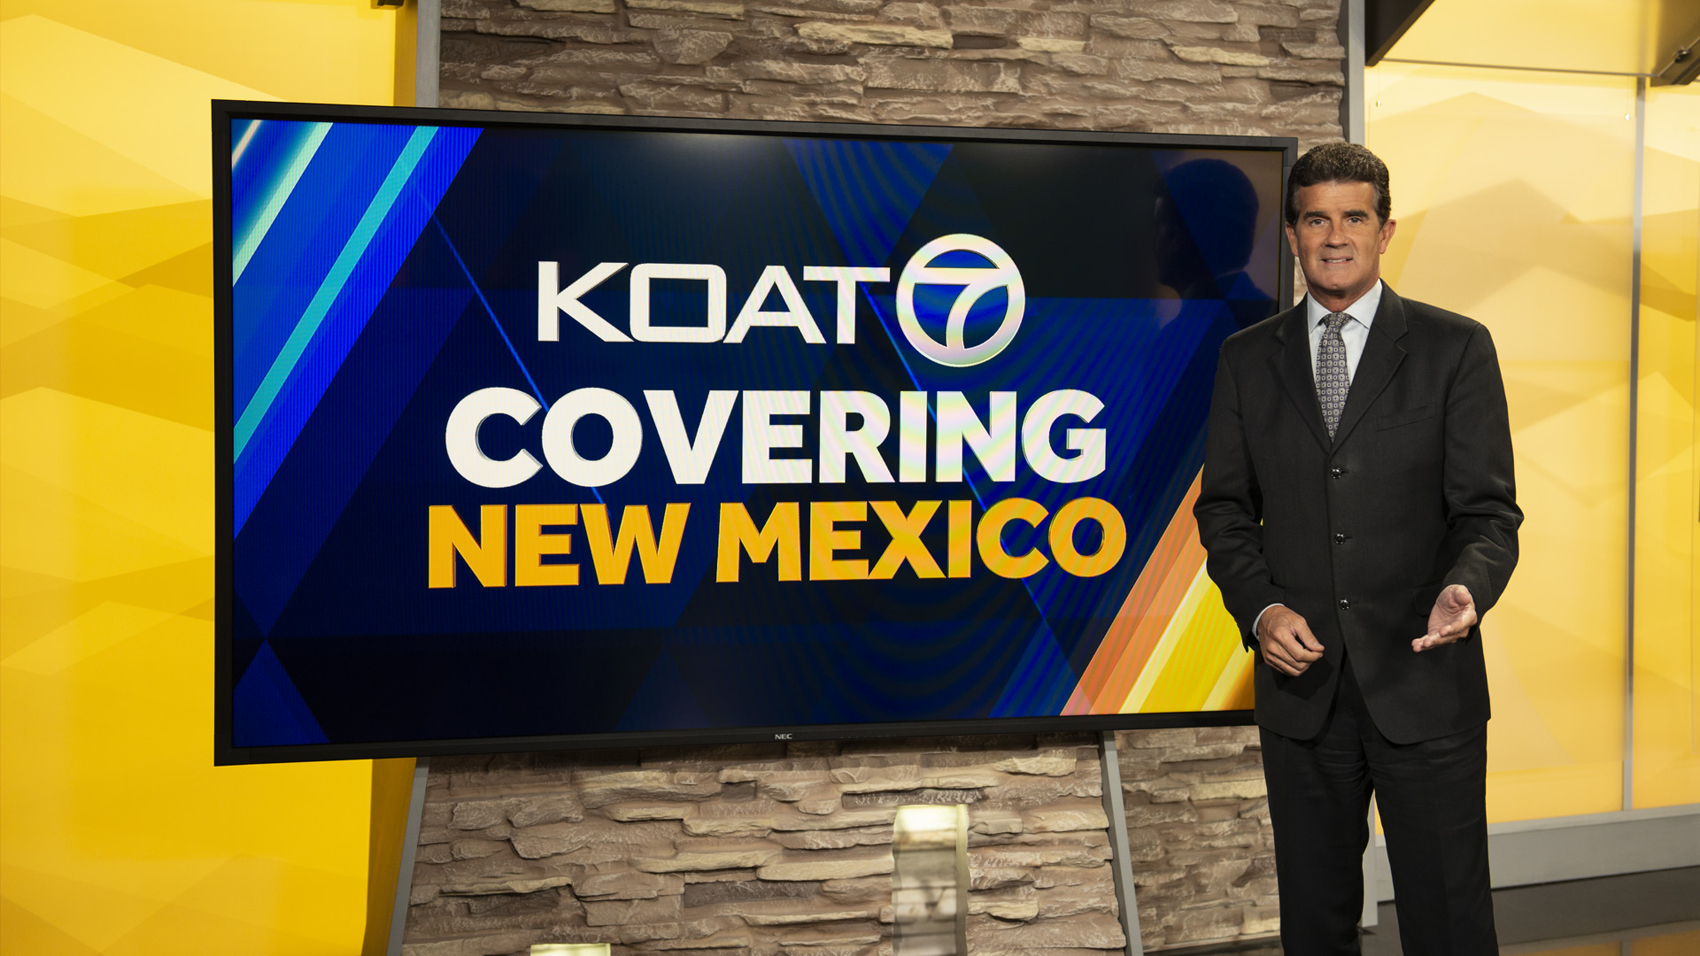 ncs_KOAT-TV-Studio-Devlin_00018